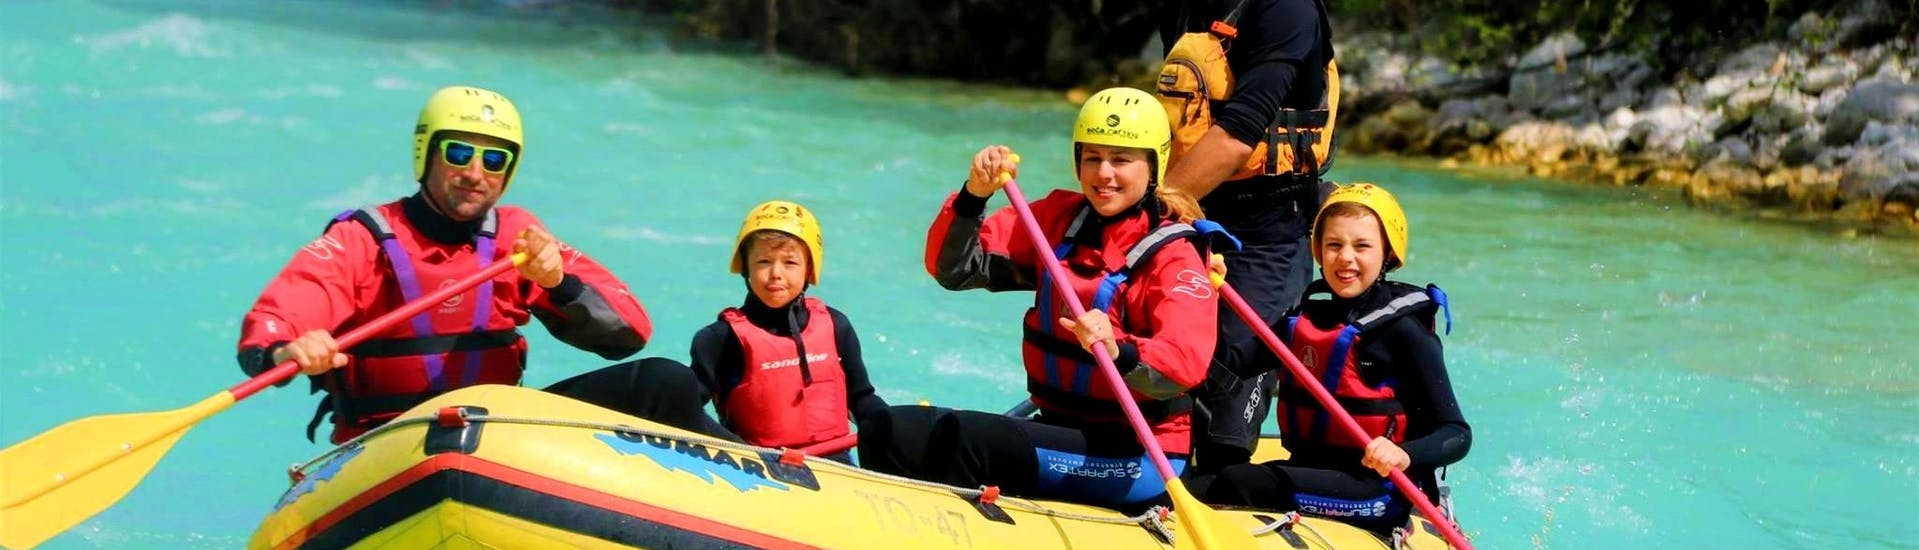 Rafting on the Soča for Families - Kreda